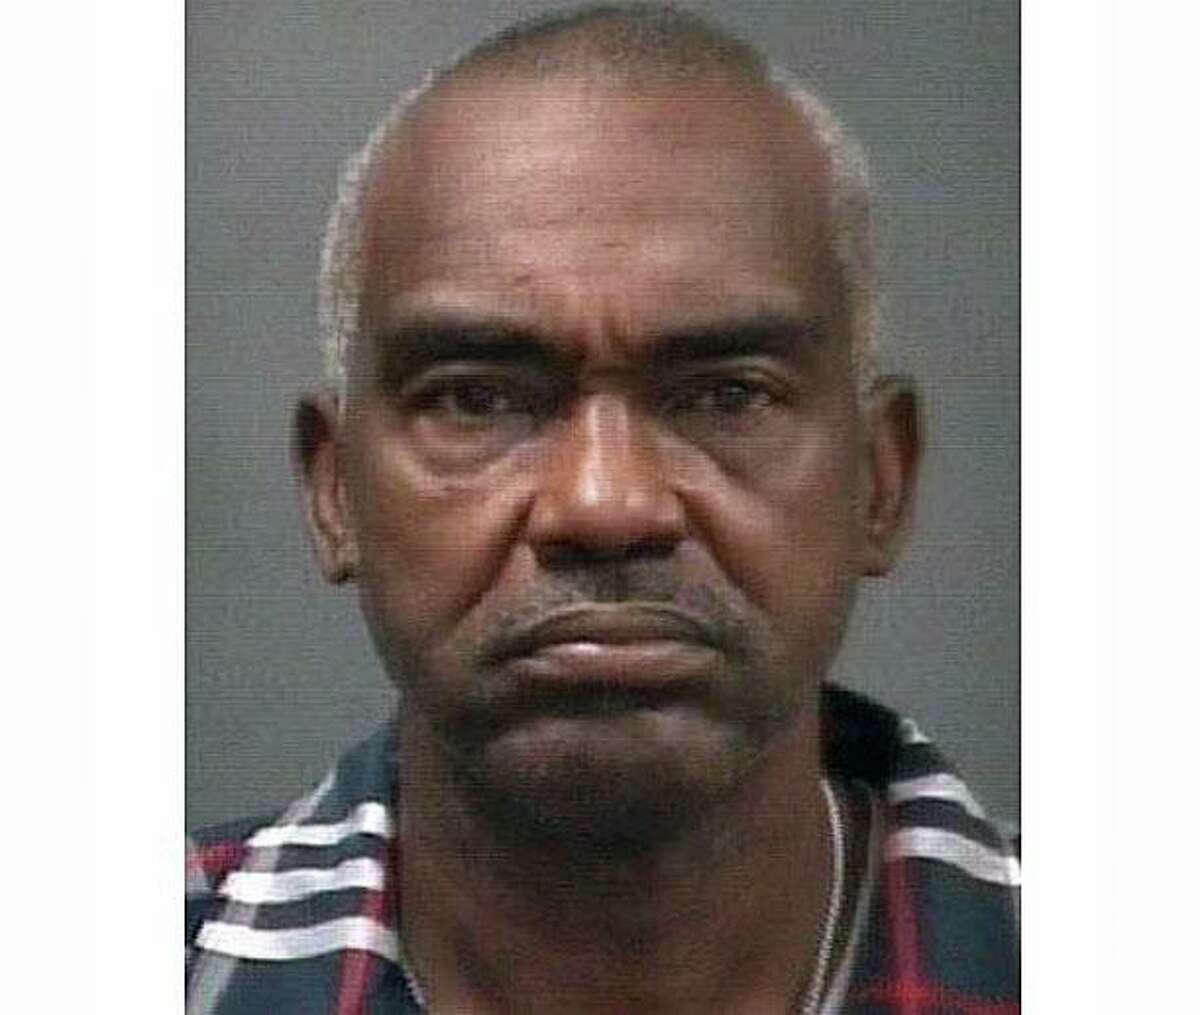 Melvin Person, 59, of Hollister Street in Stratford, Conn., turned himself in on an active warrant for his arrest on Saturday, Sept. 26, 2020, in connection with an alleged vehicle theft last year, police said Tuesday.